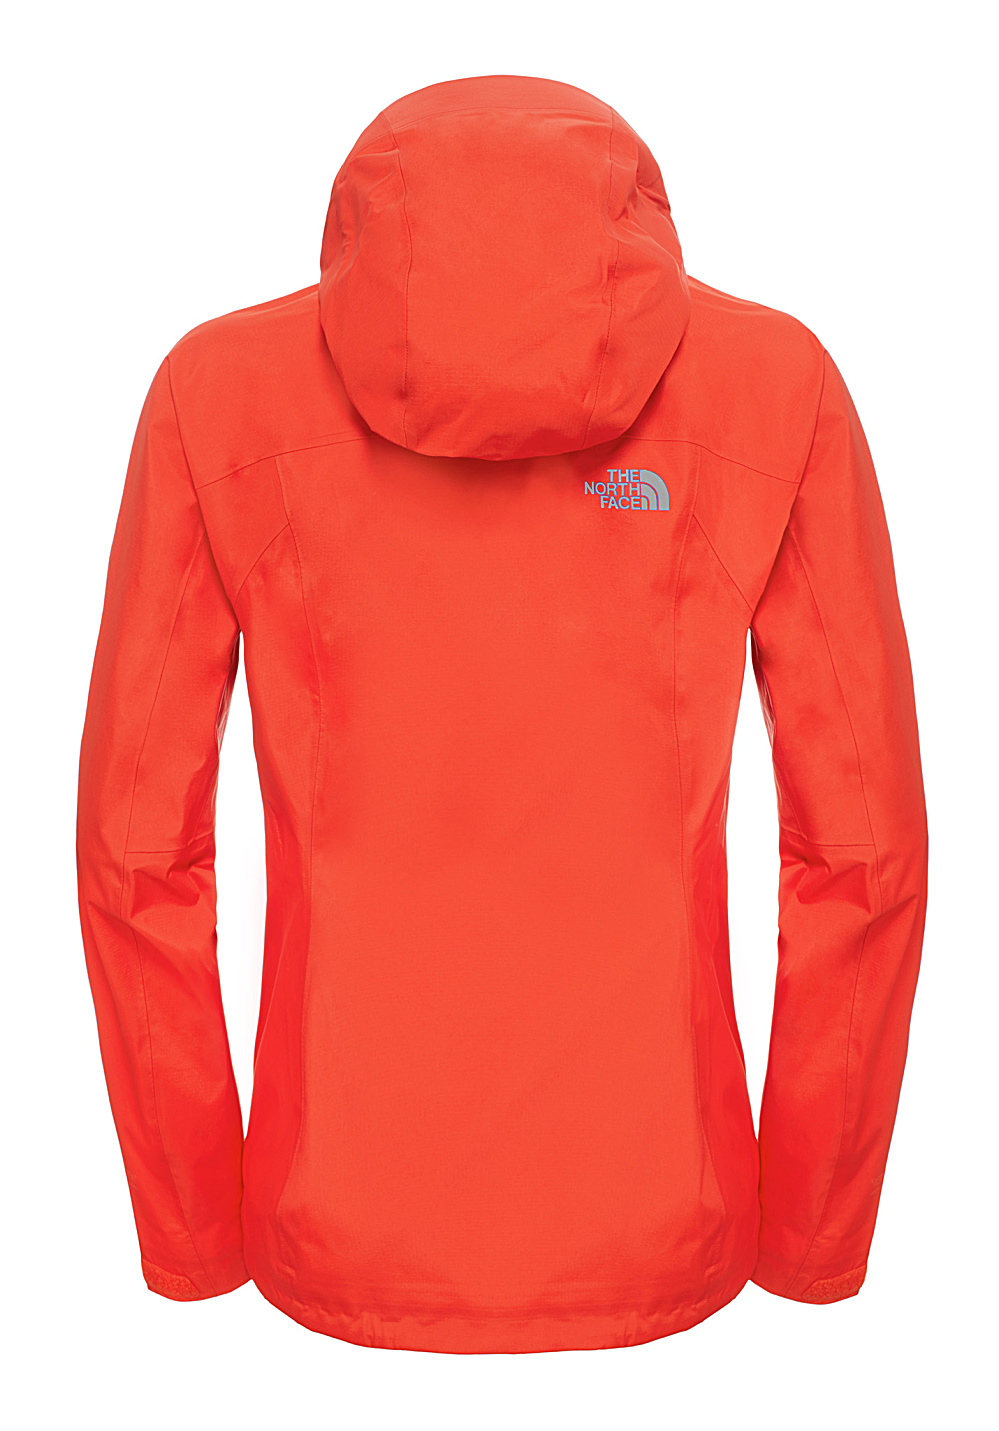 ceefec94683a9 the-north-face-oroshi-functional-jacket-women-red.jpg